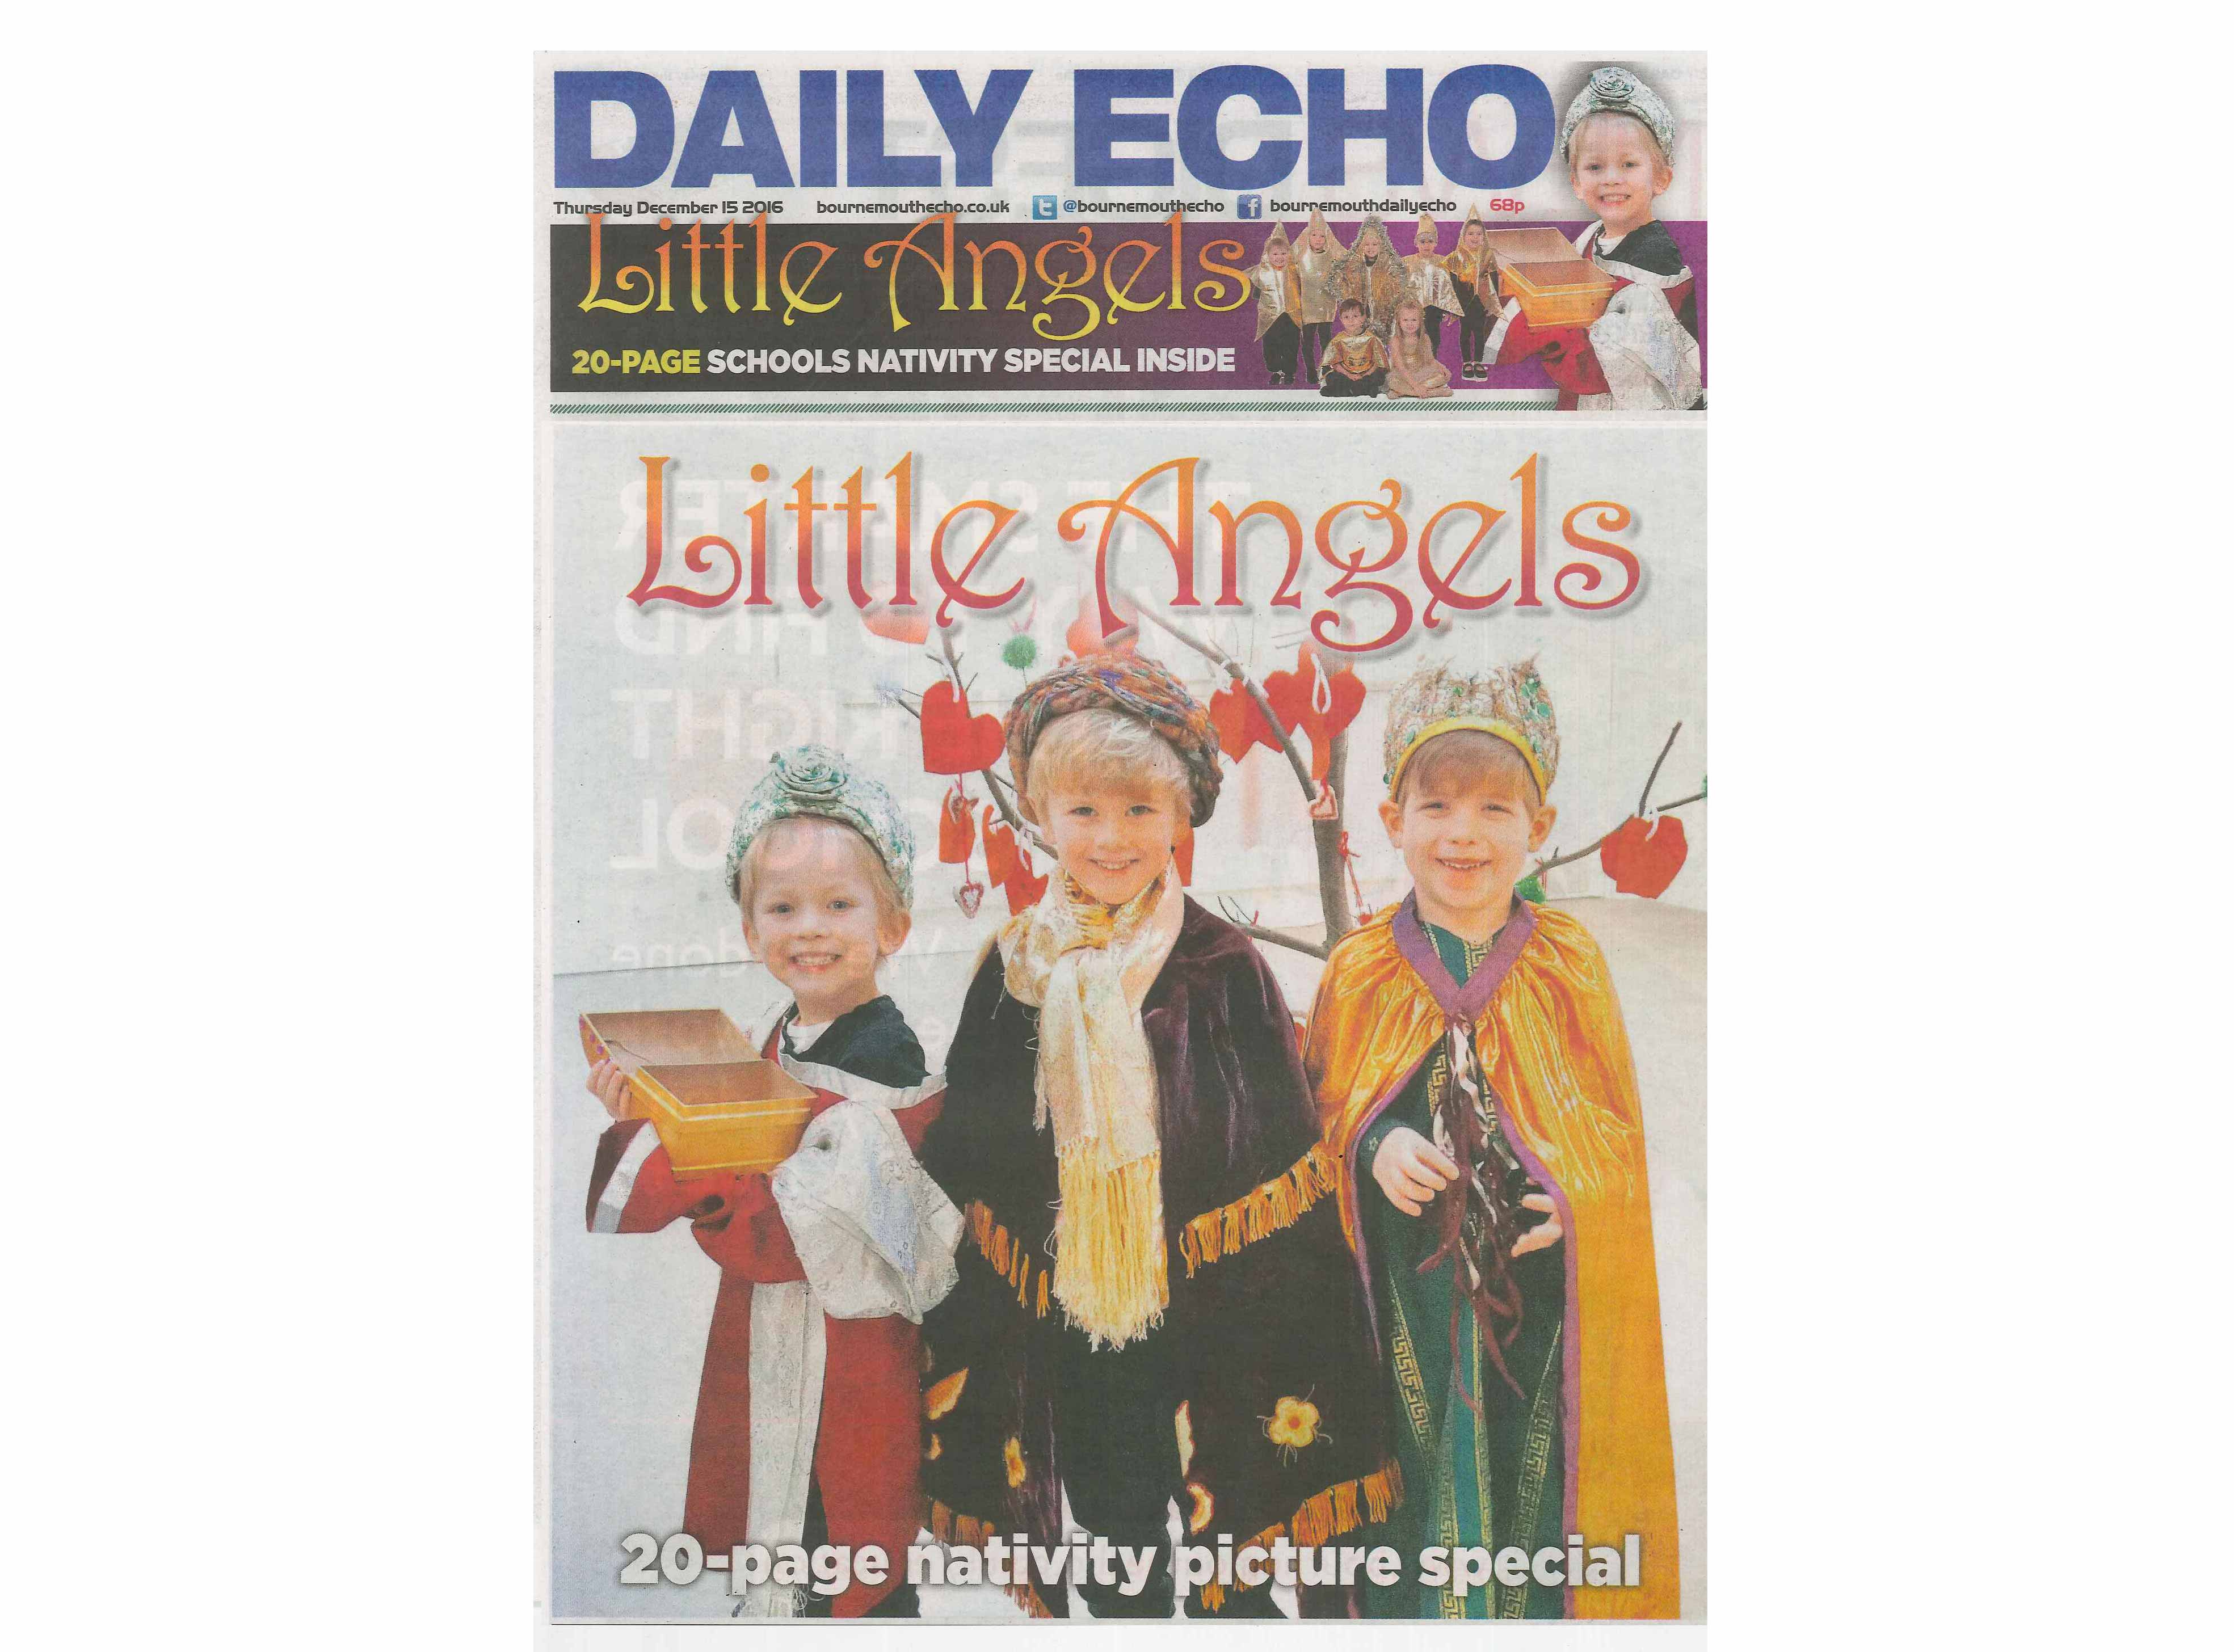 Yarrells School Pupils Are 'Little Angels' On The Front Page Of The Bournemouth Daily Echo